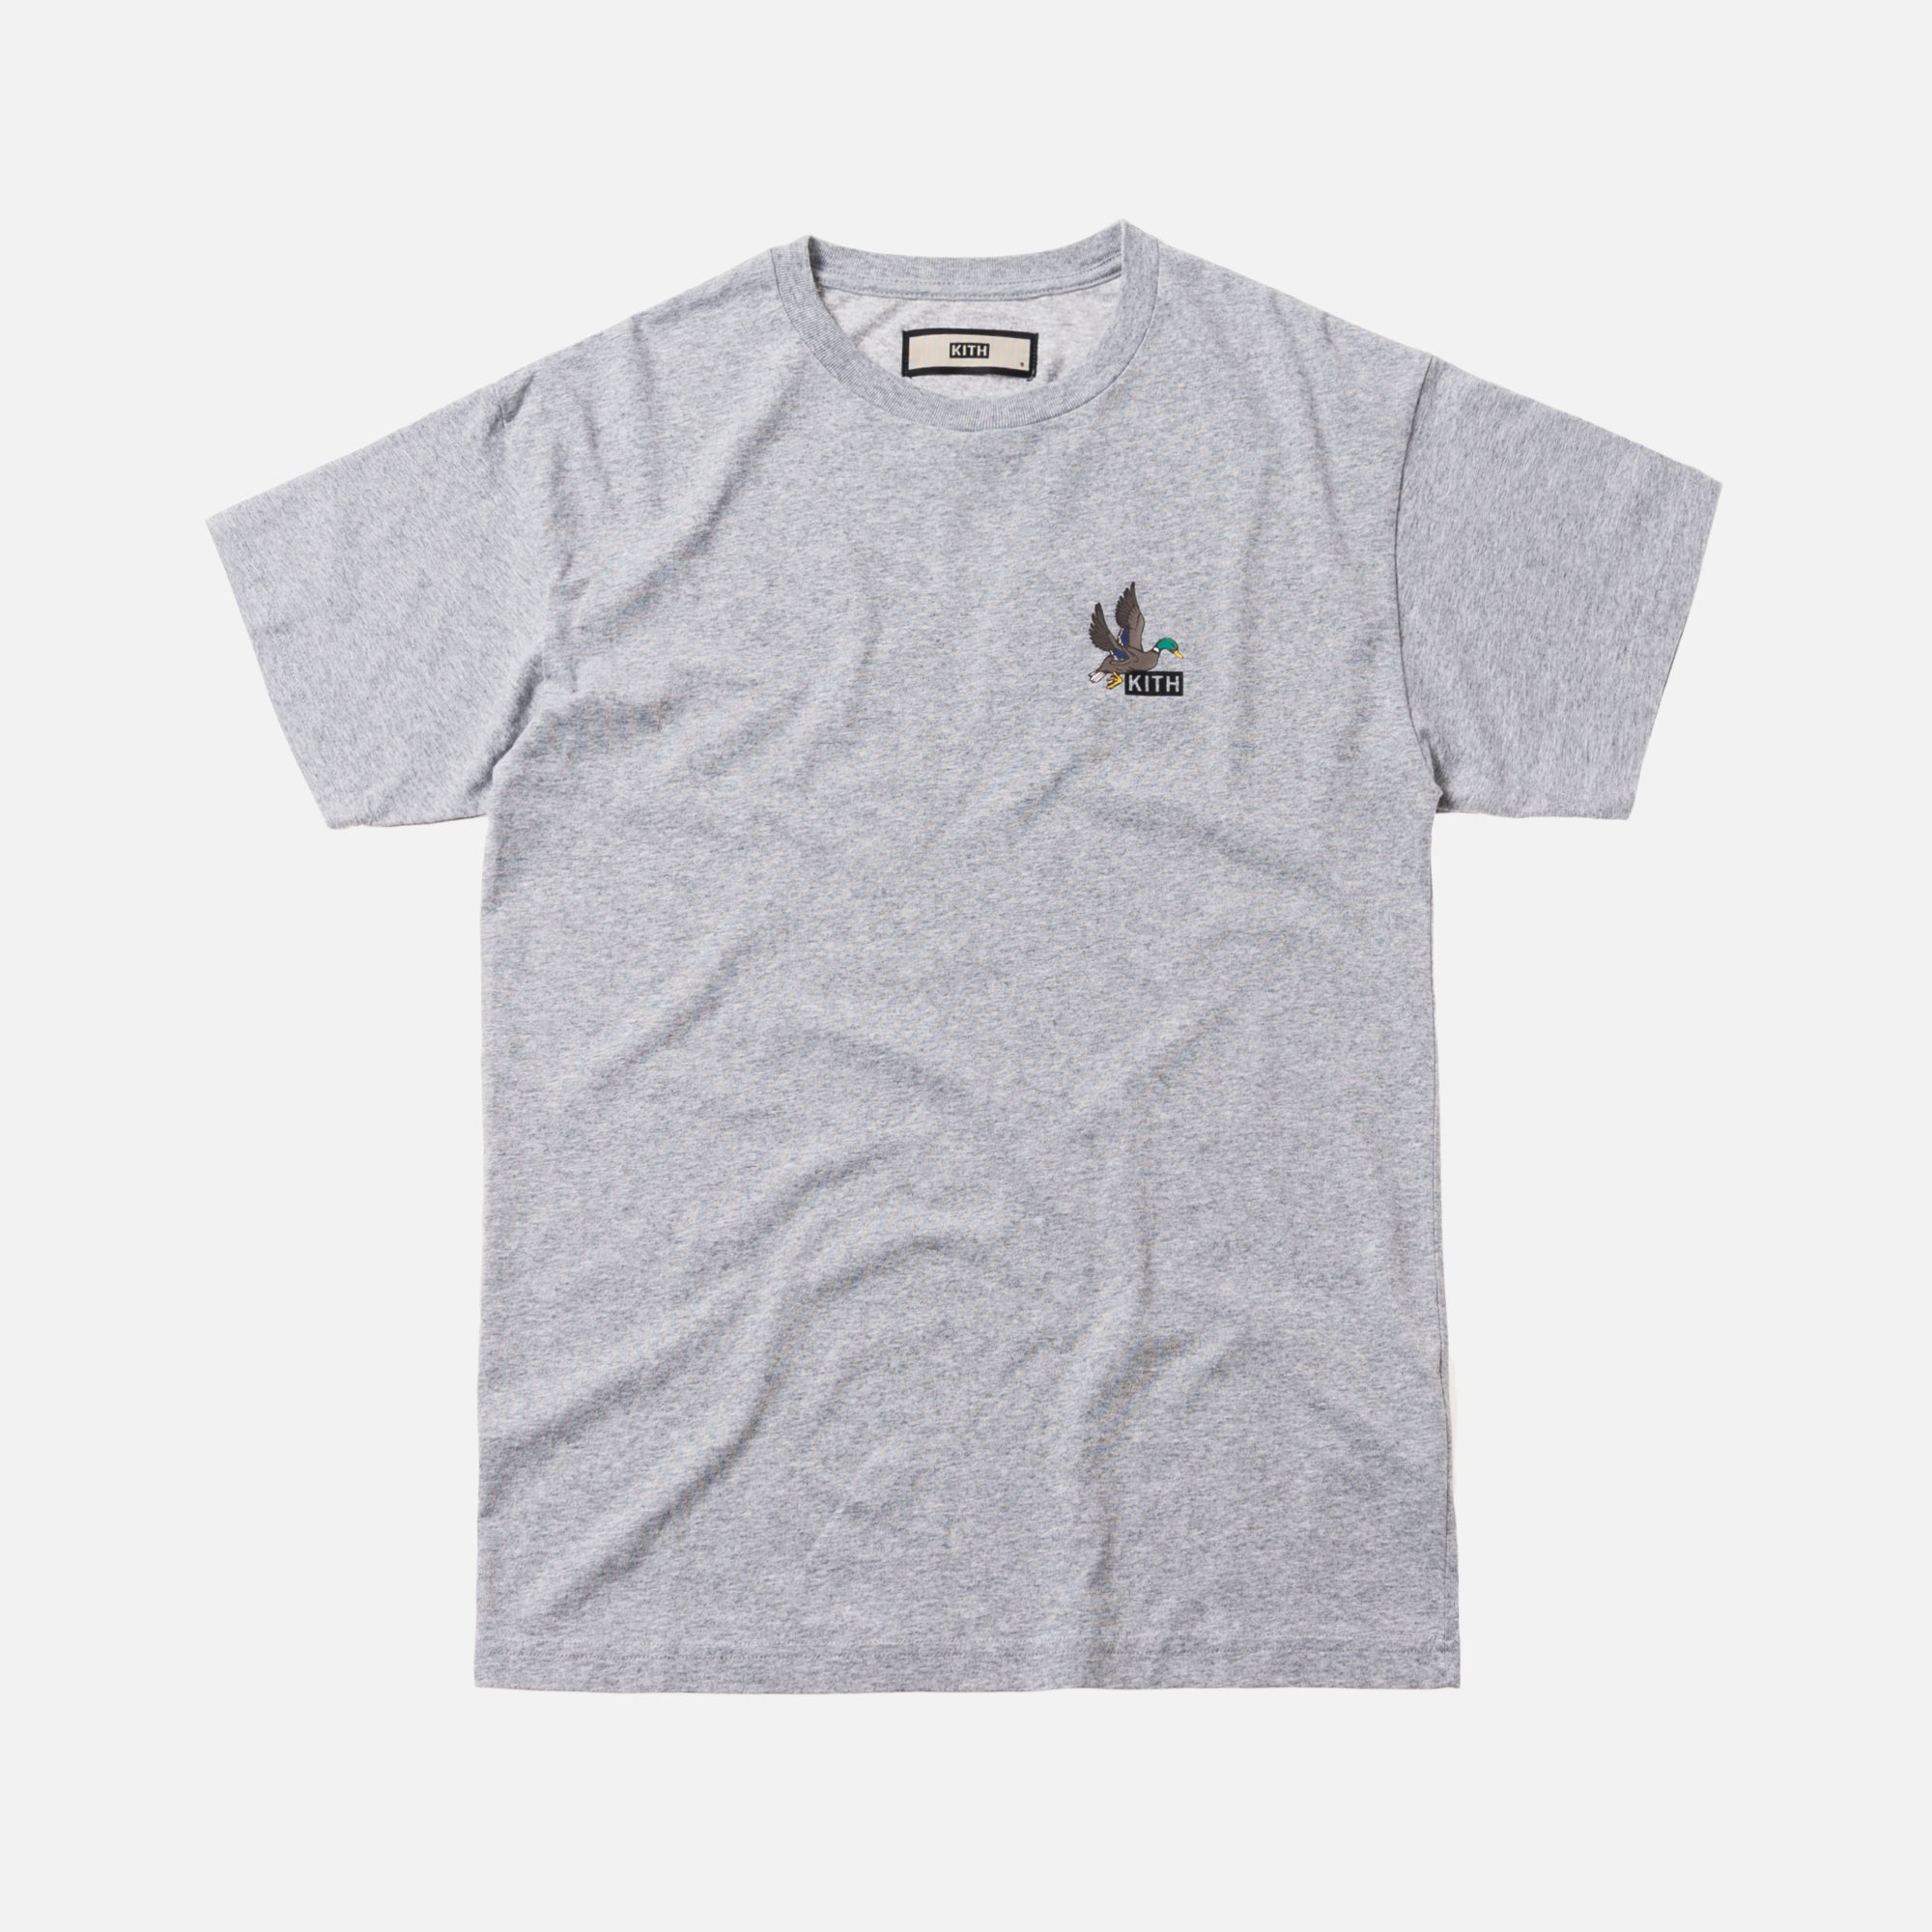 Kith Stop The Hunt Tee - Heather Grey